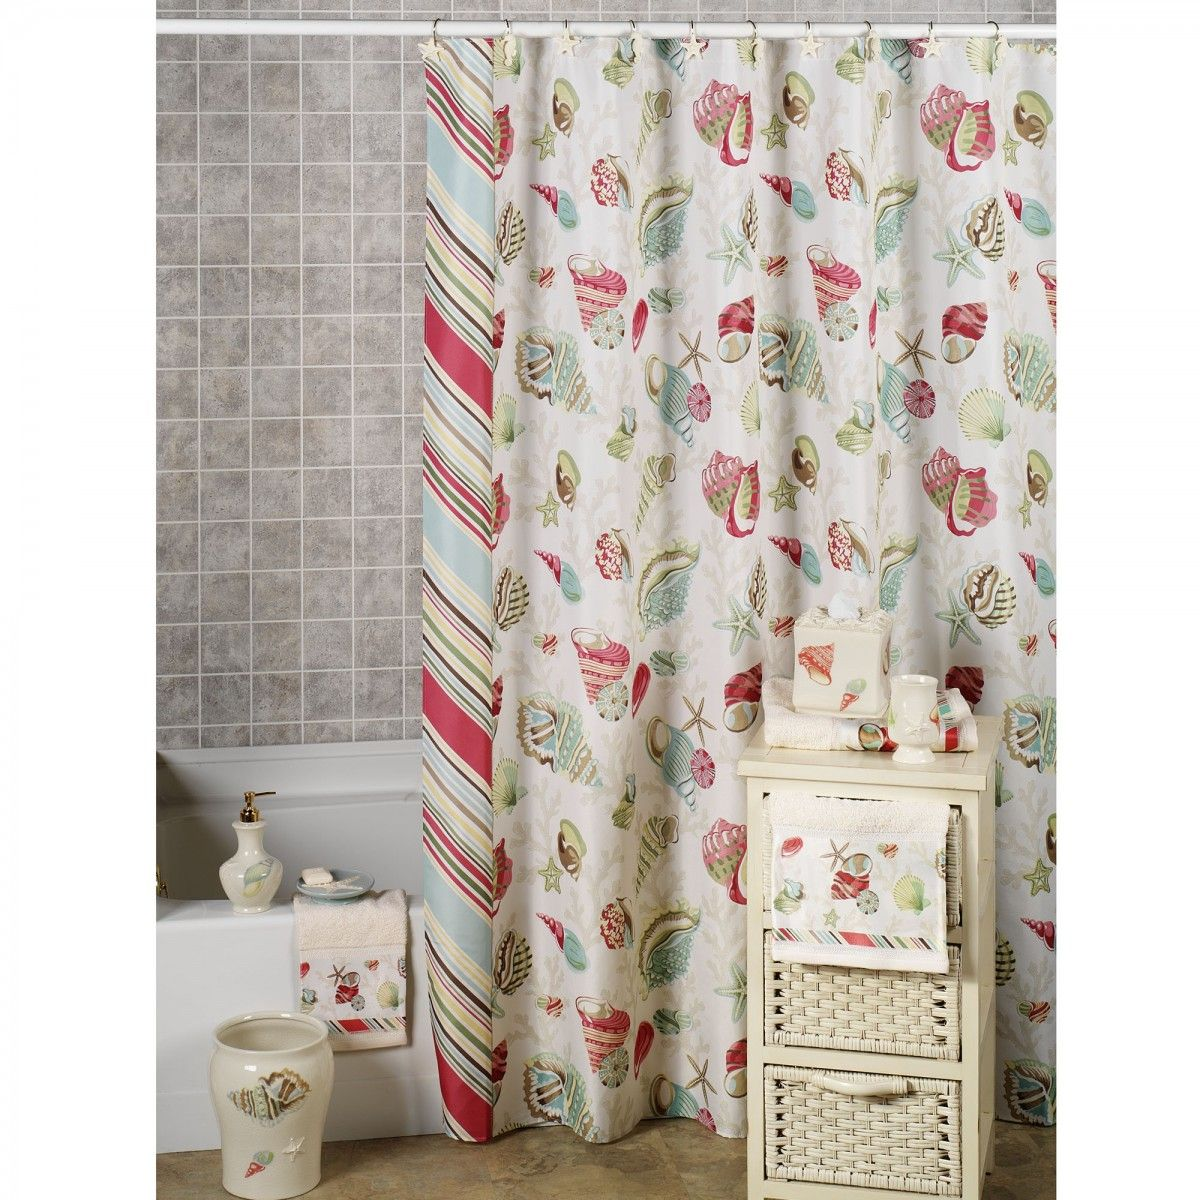 Ba bathroom curtains at sears - Coral Pattern Shower Curtains